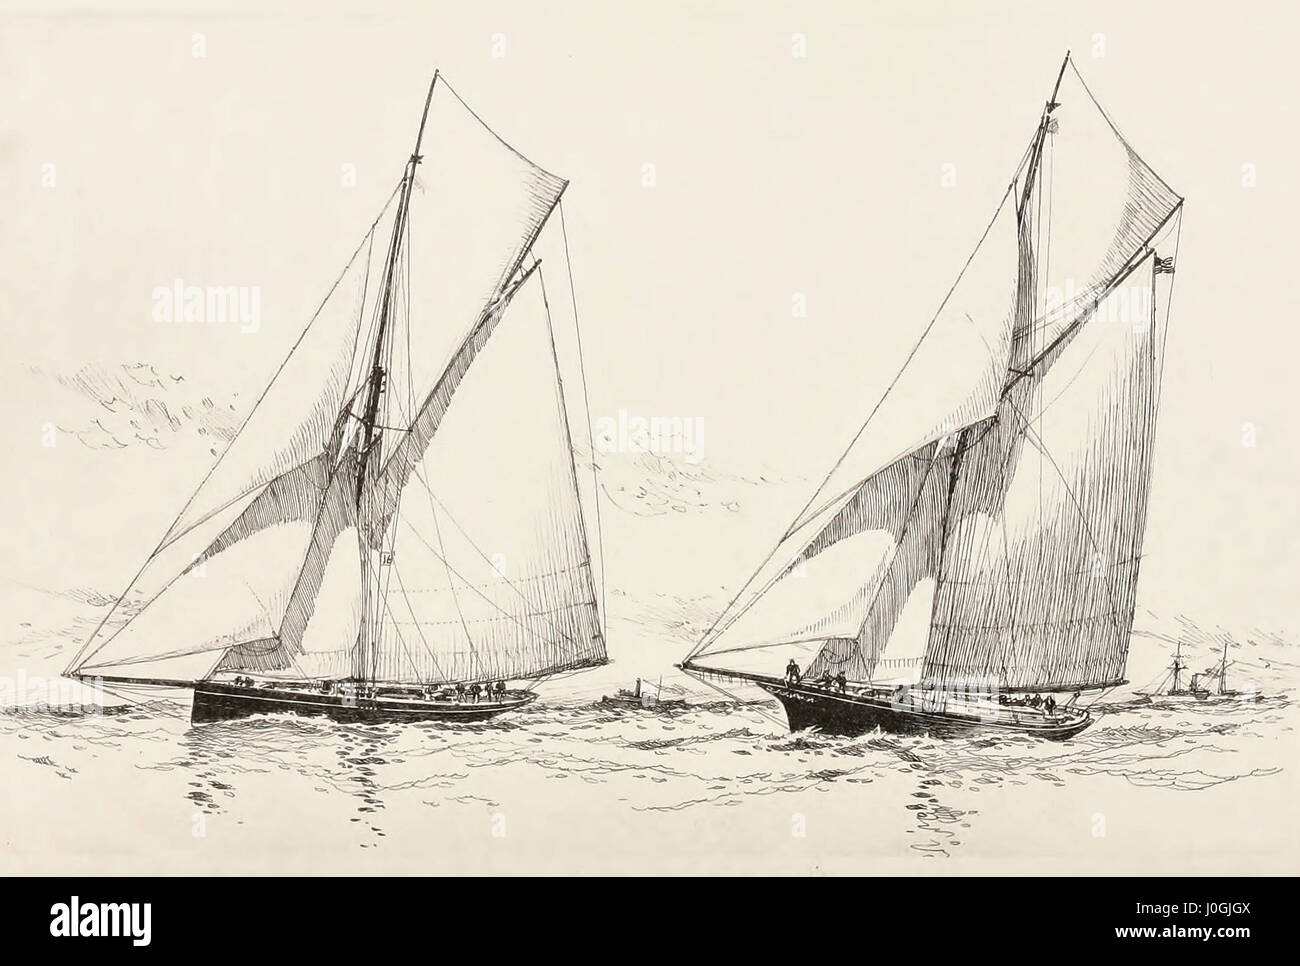 Bedouin (Cutter) and Gracie (Sloop) - Unsuccessful candidates for cup defense honors in 1885 - Stock Image